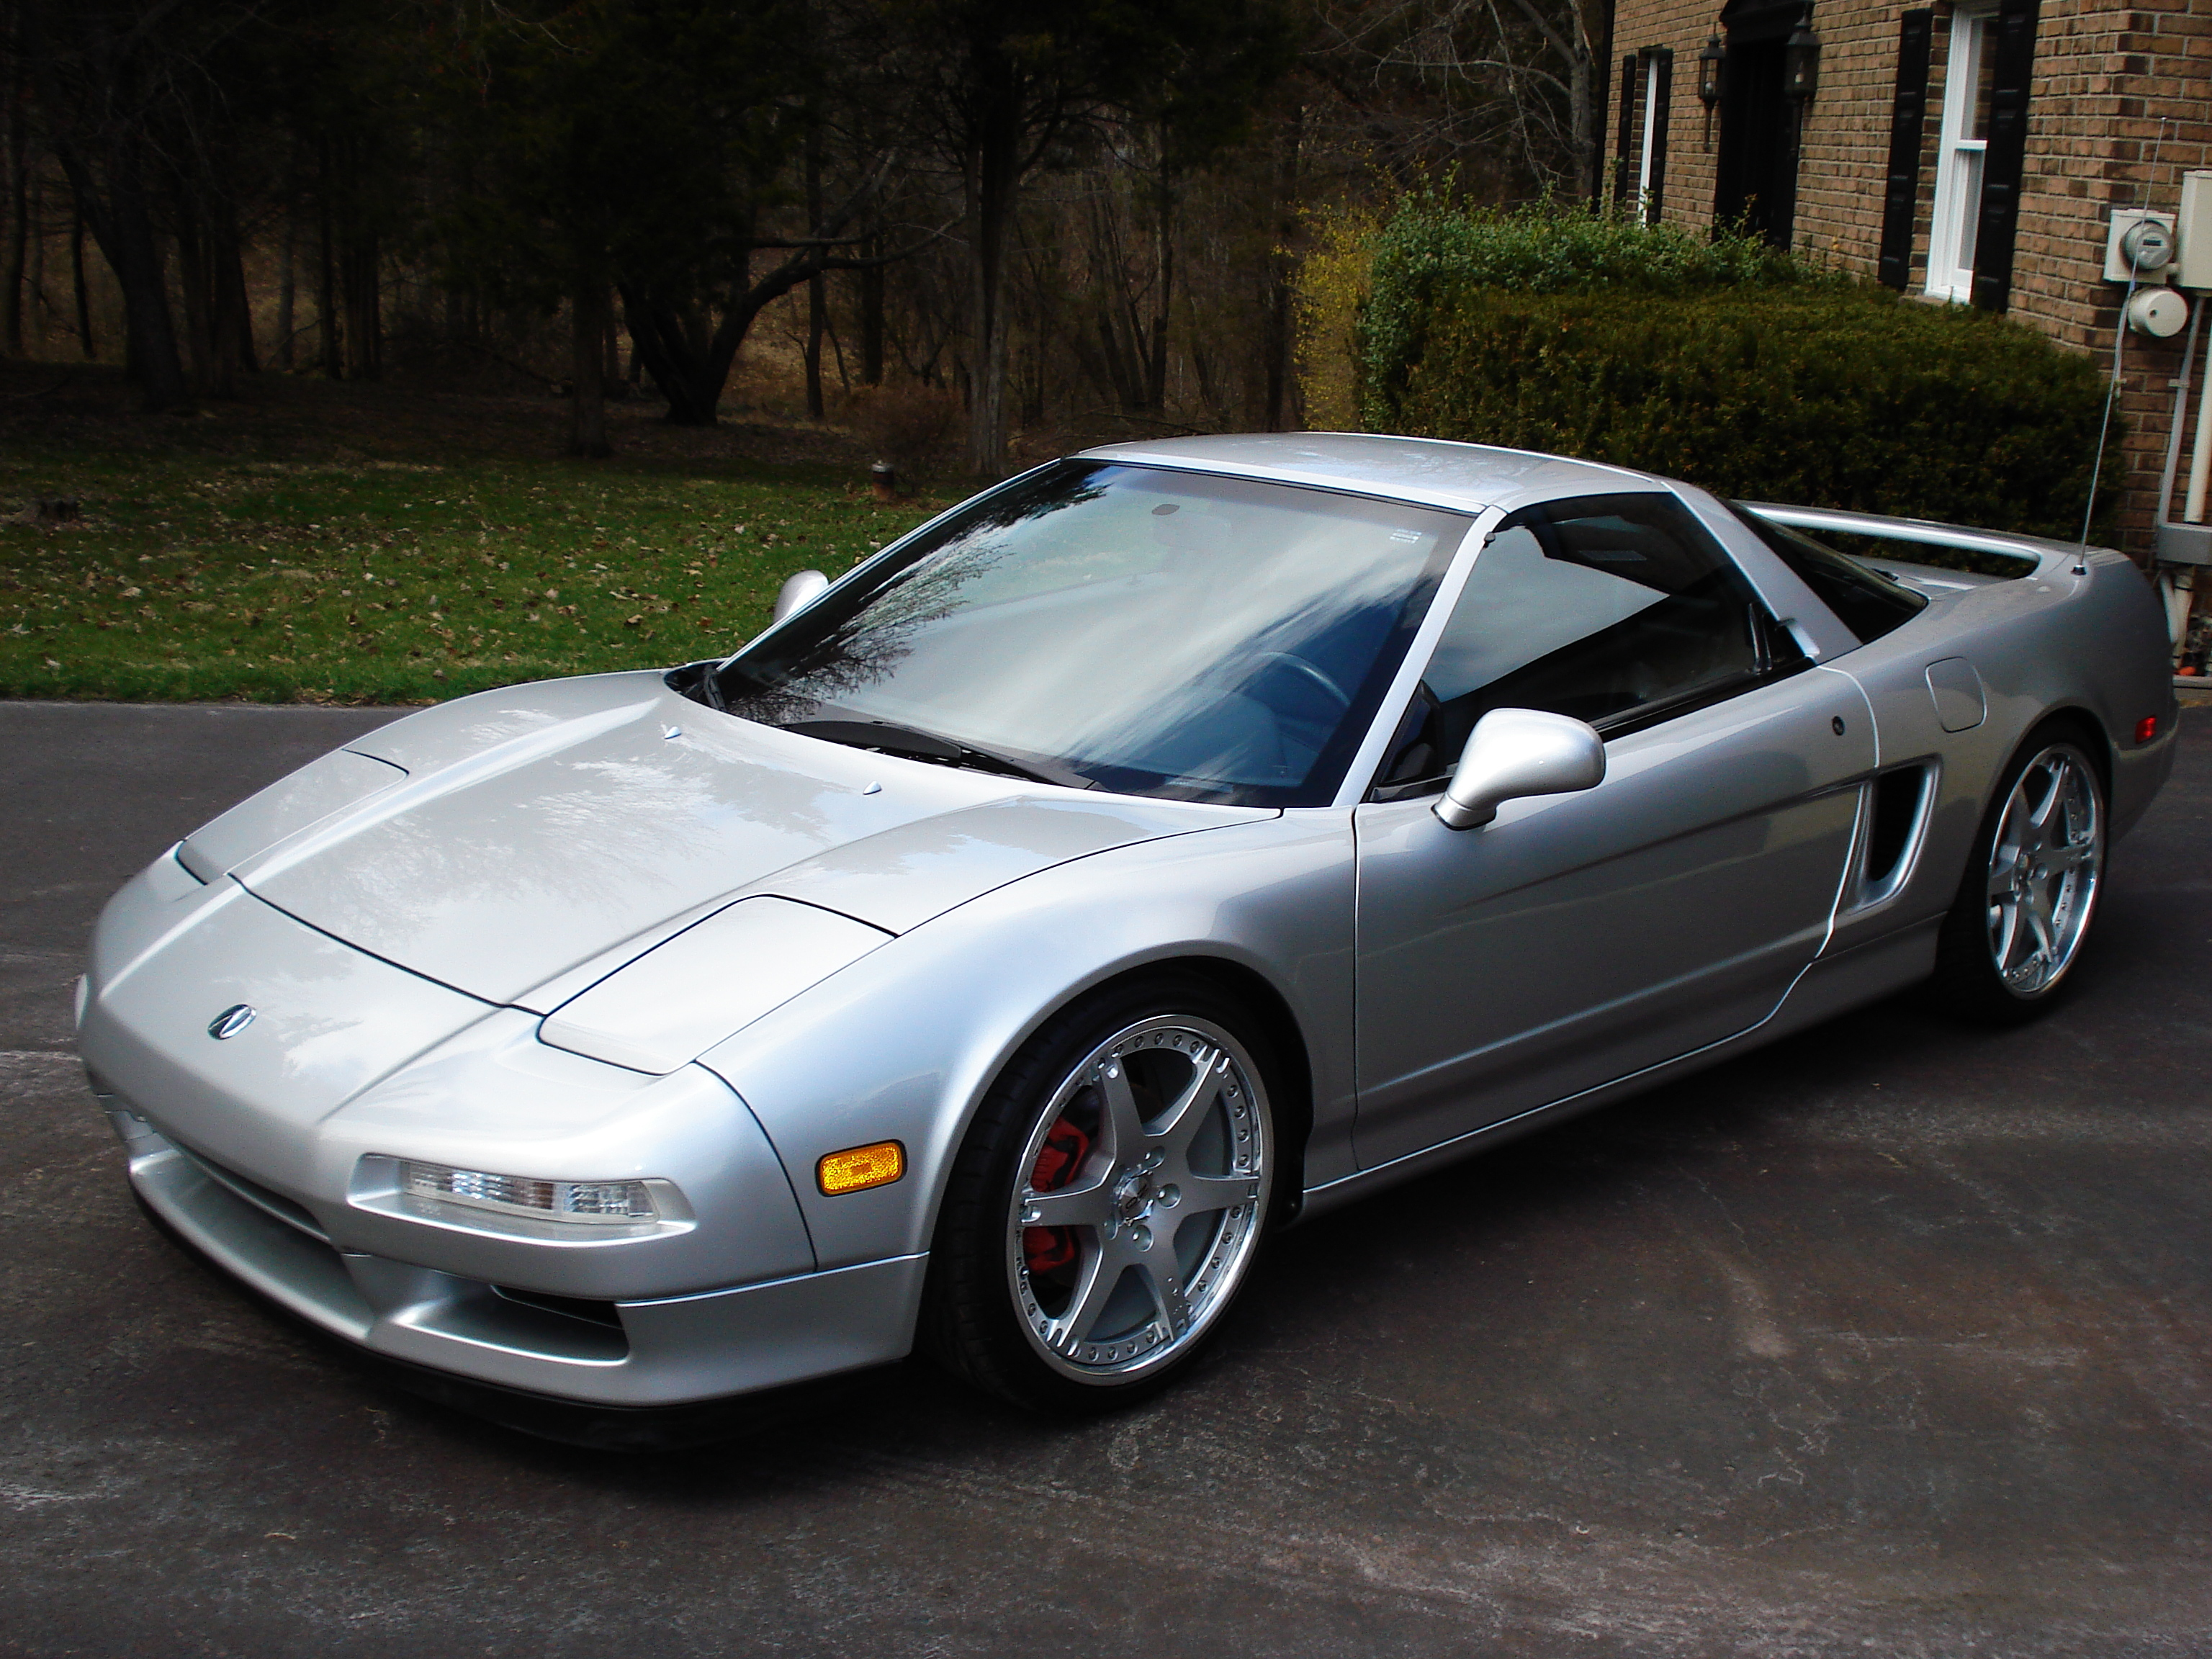 Acura Nsx For Sale >> Acura NSX (1990 - 2005) Photo Gallery - Images, Wallpaper, Custom Pics